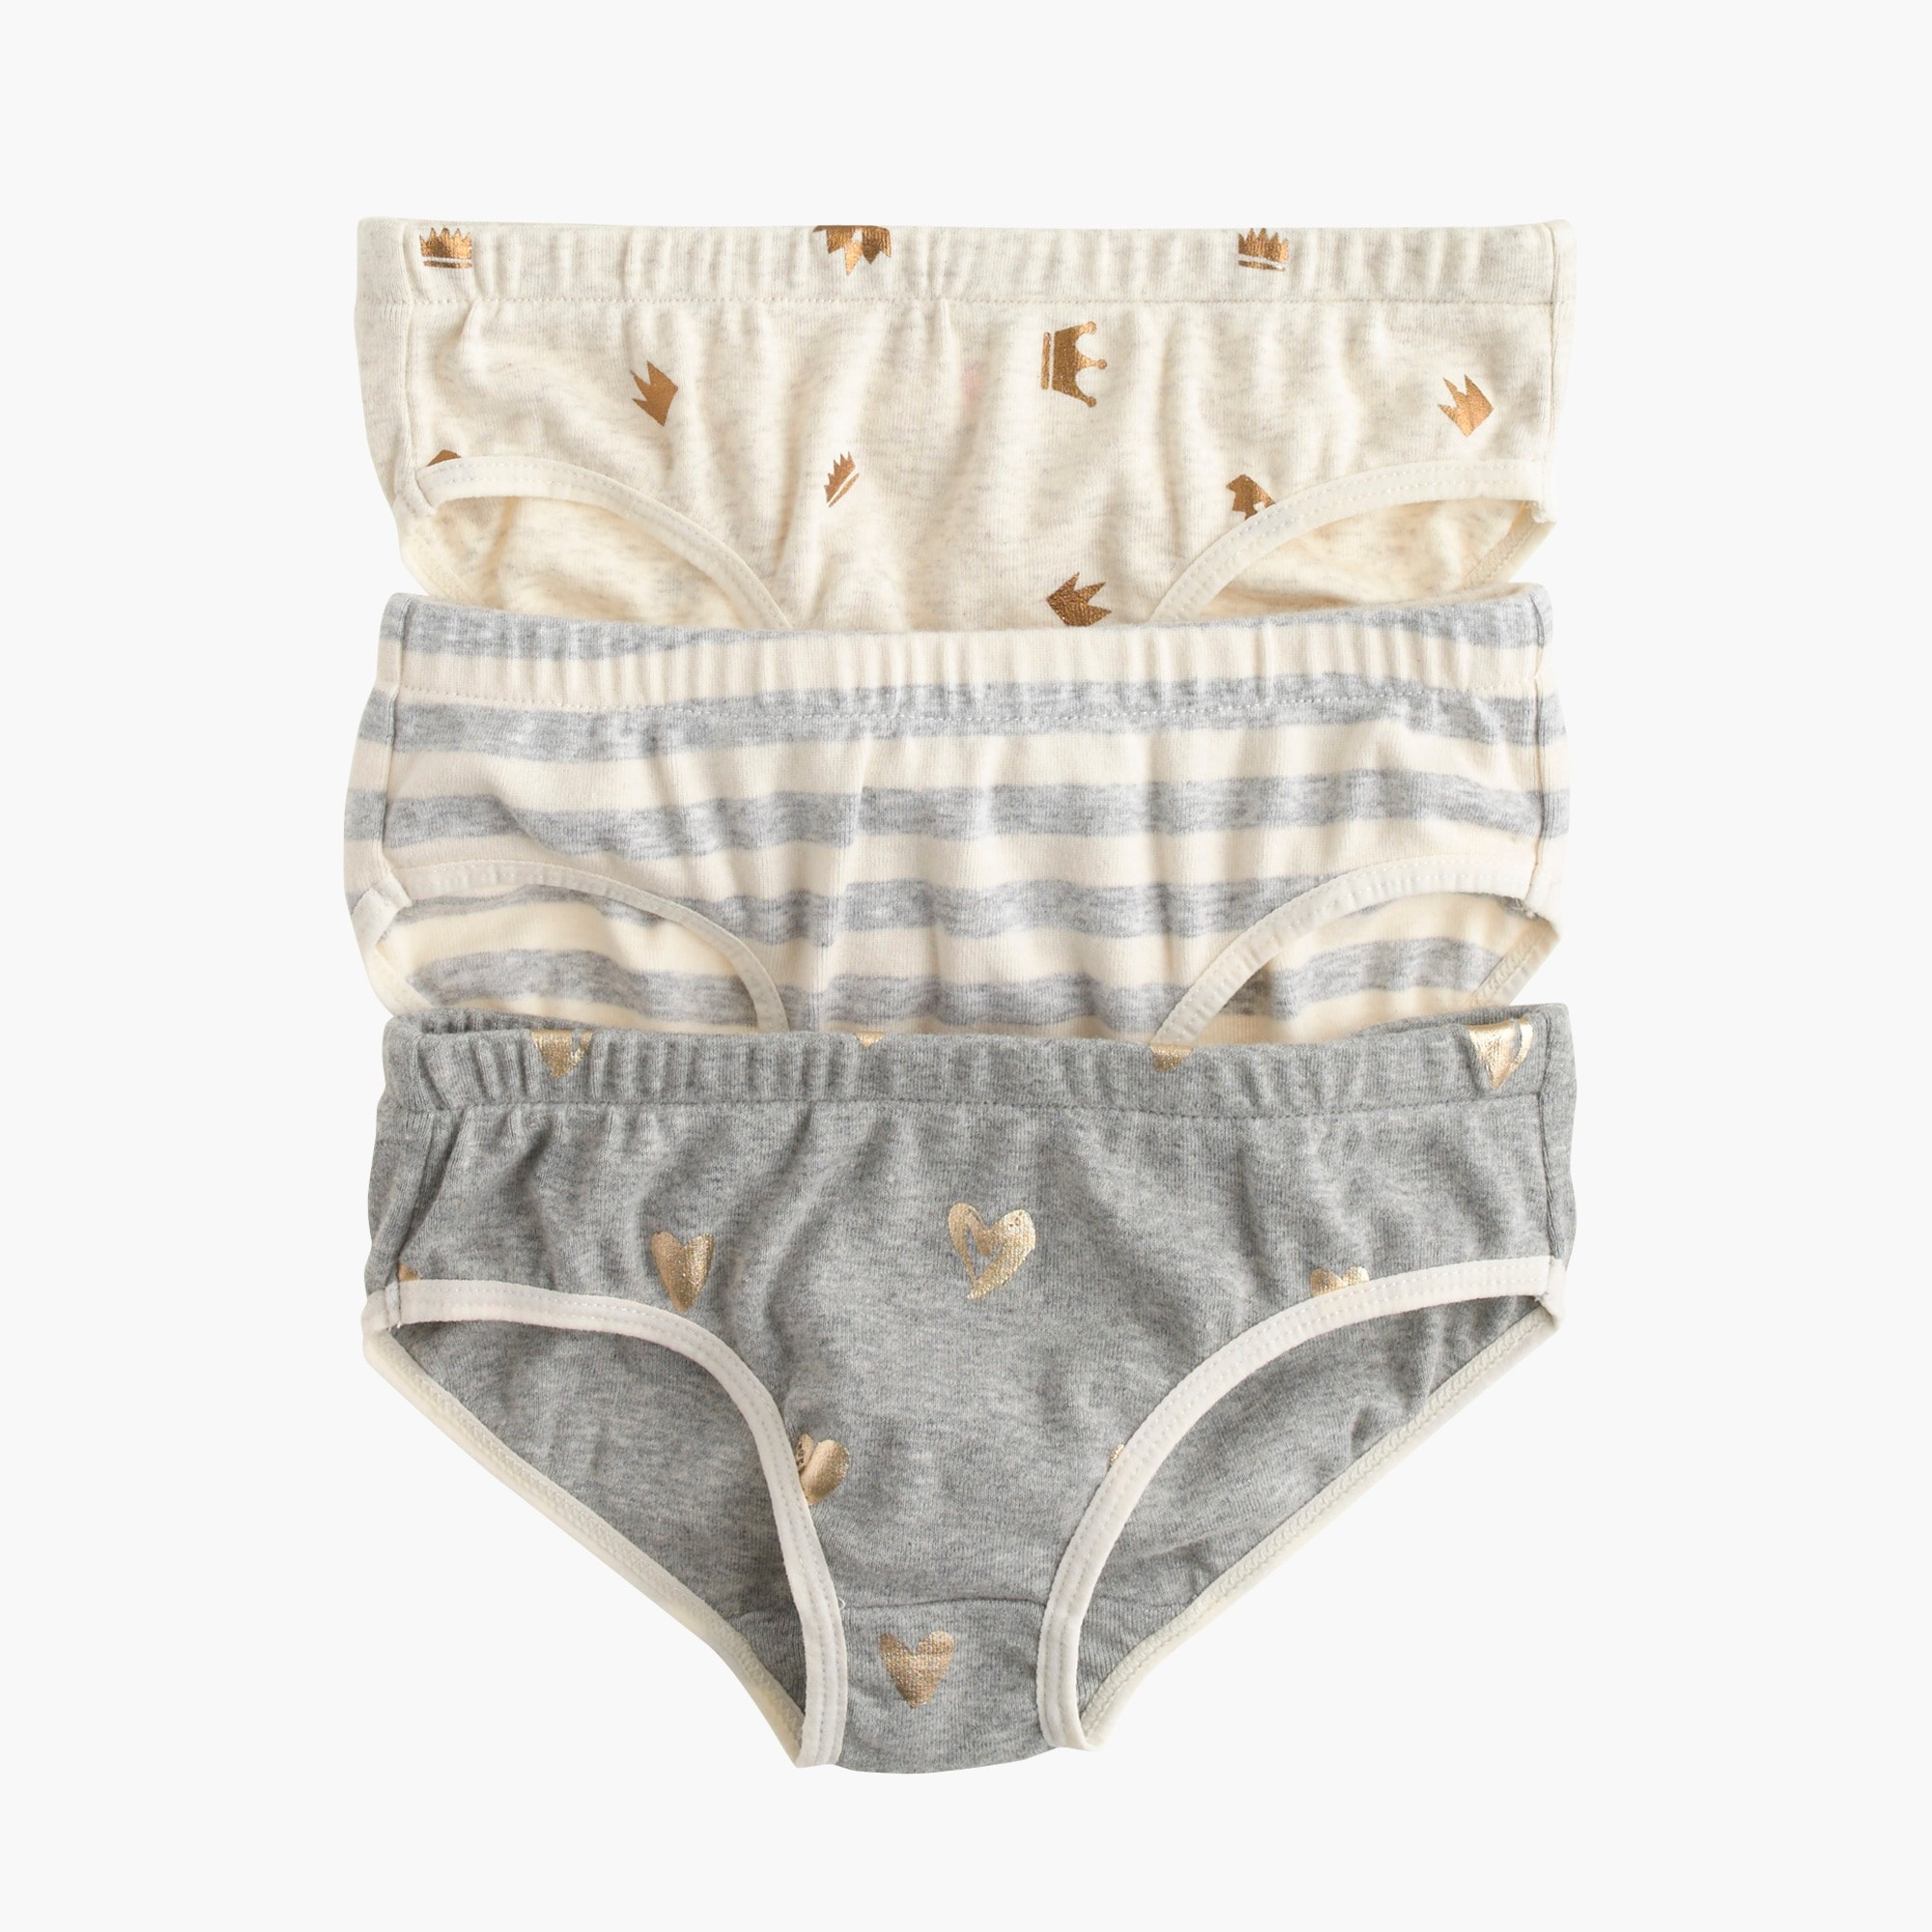 Girls' underwear three-pack in stripe heart